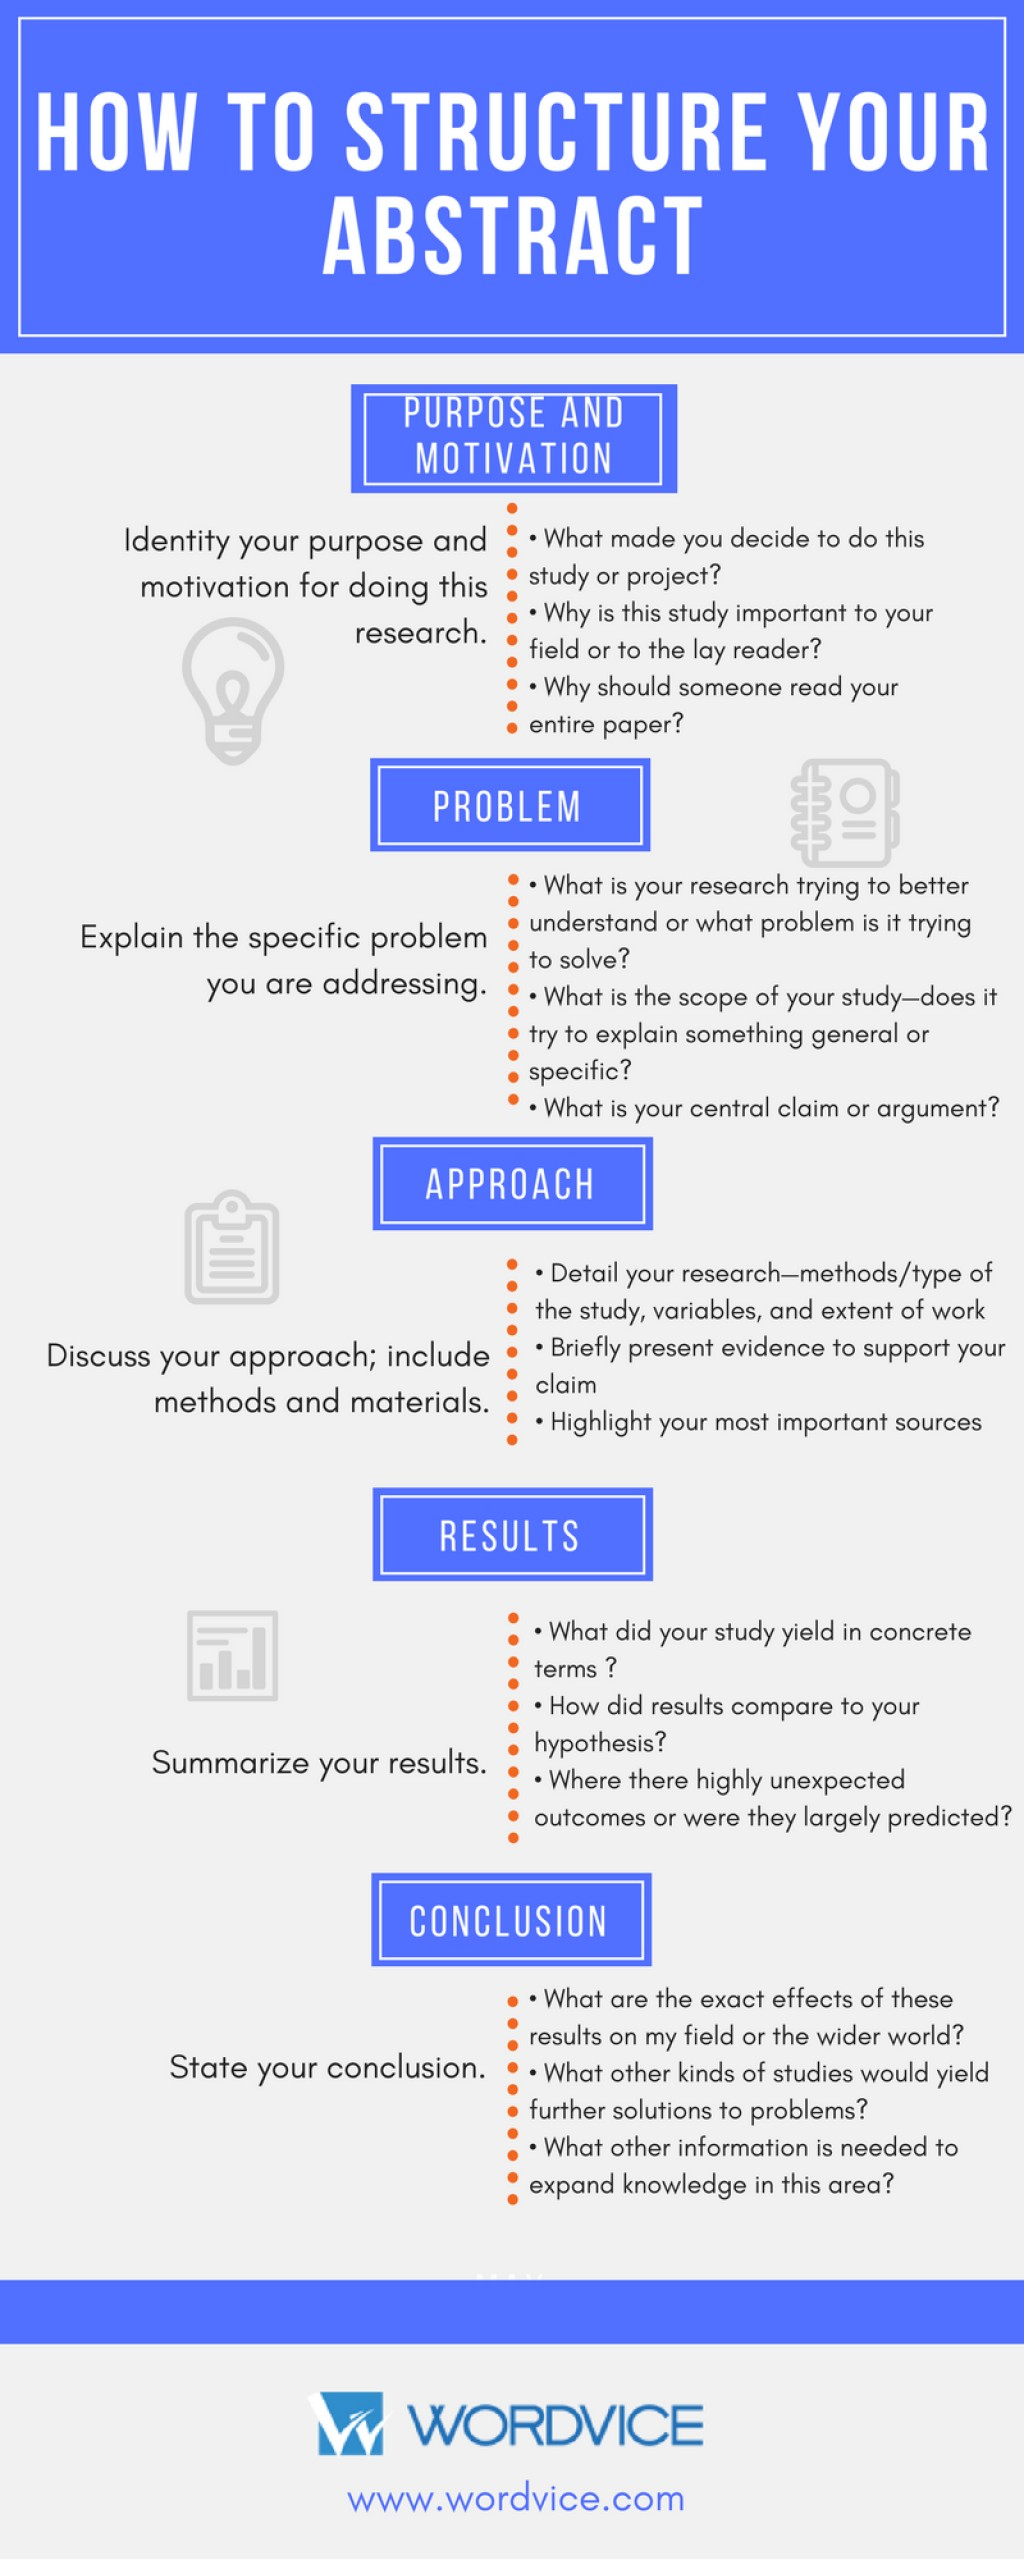 011 What Is The Purpose Of Research Paper How To Structure Your Impressive A Conducting Critiquing Process Writing Large